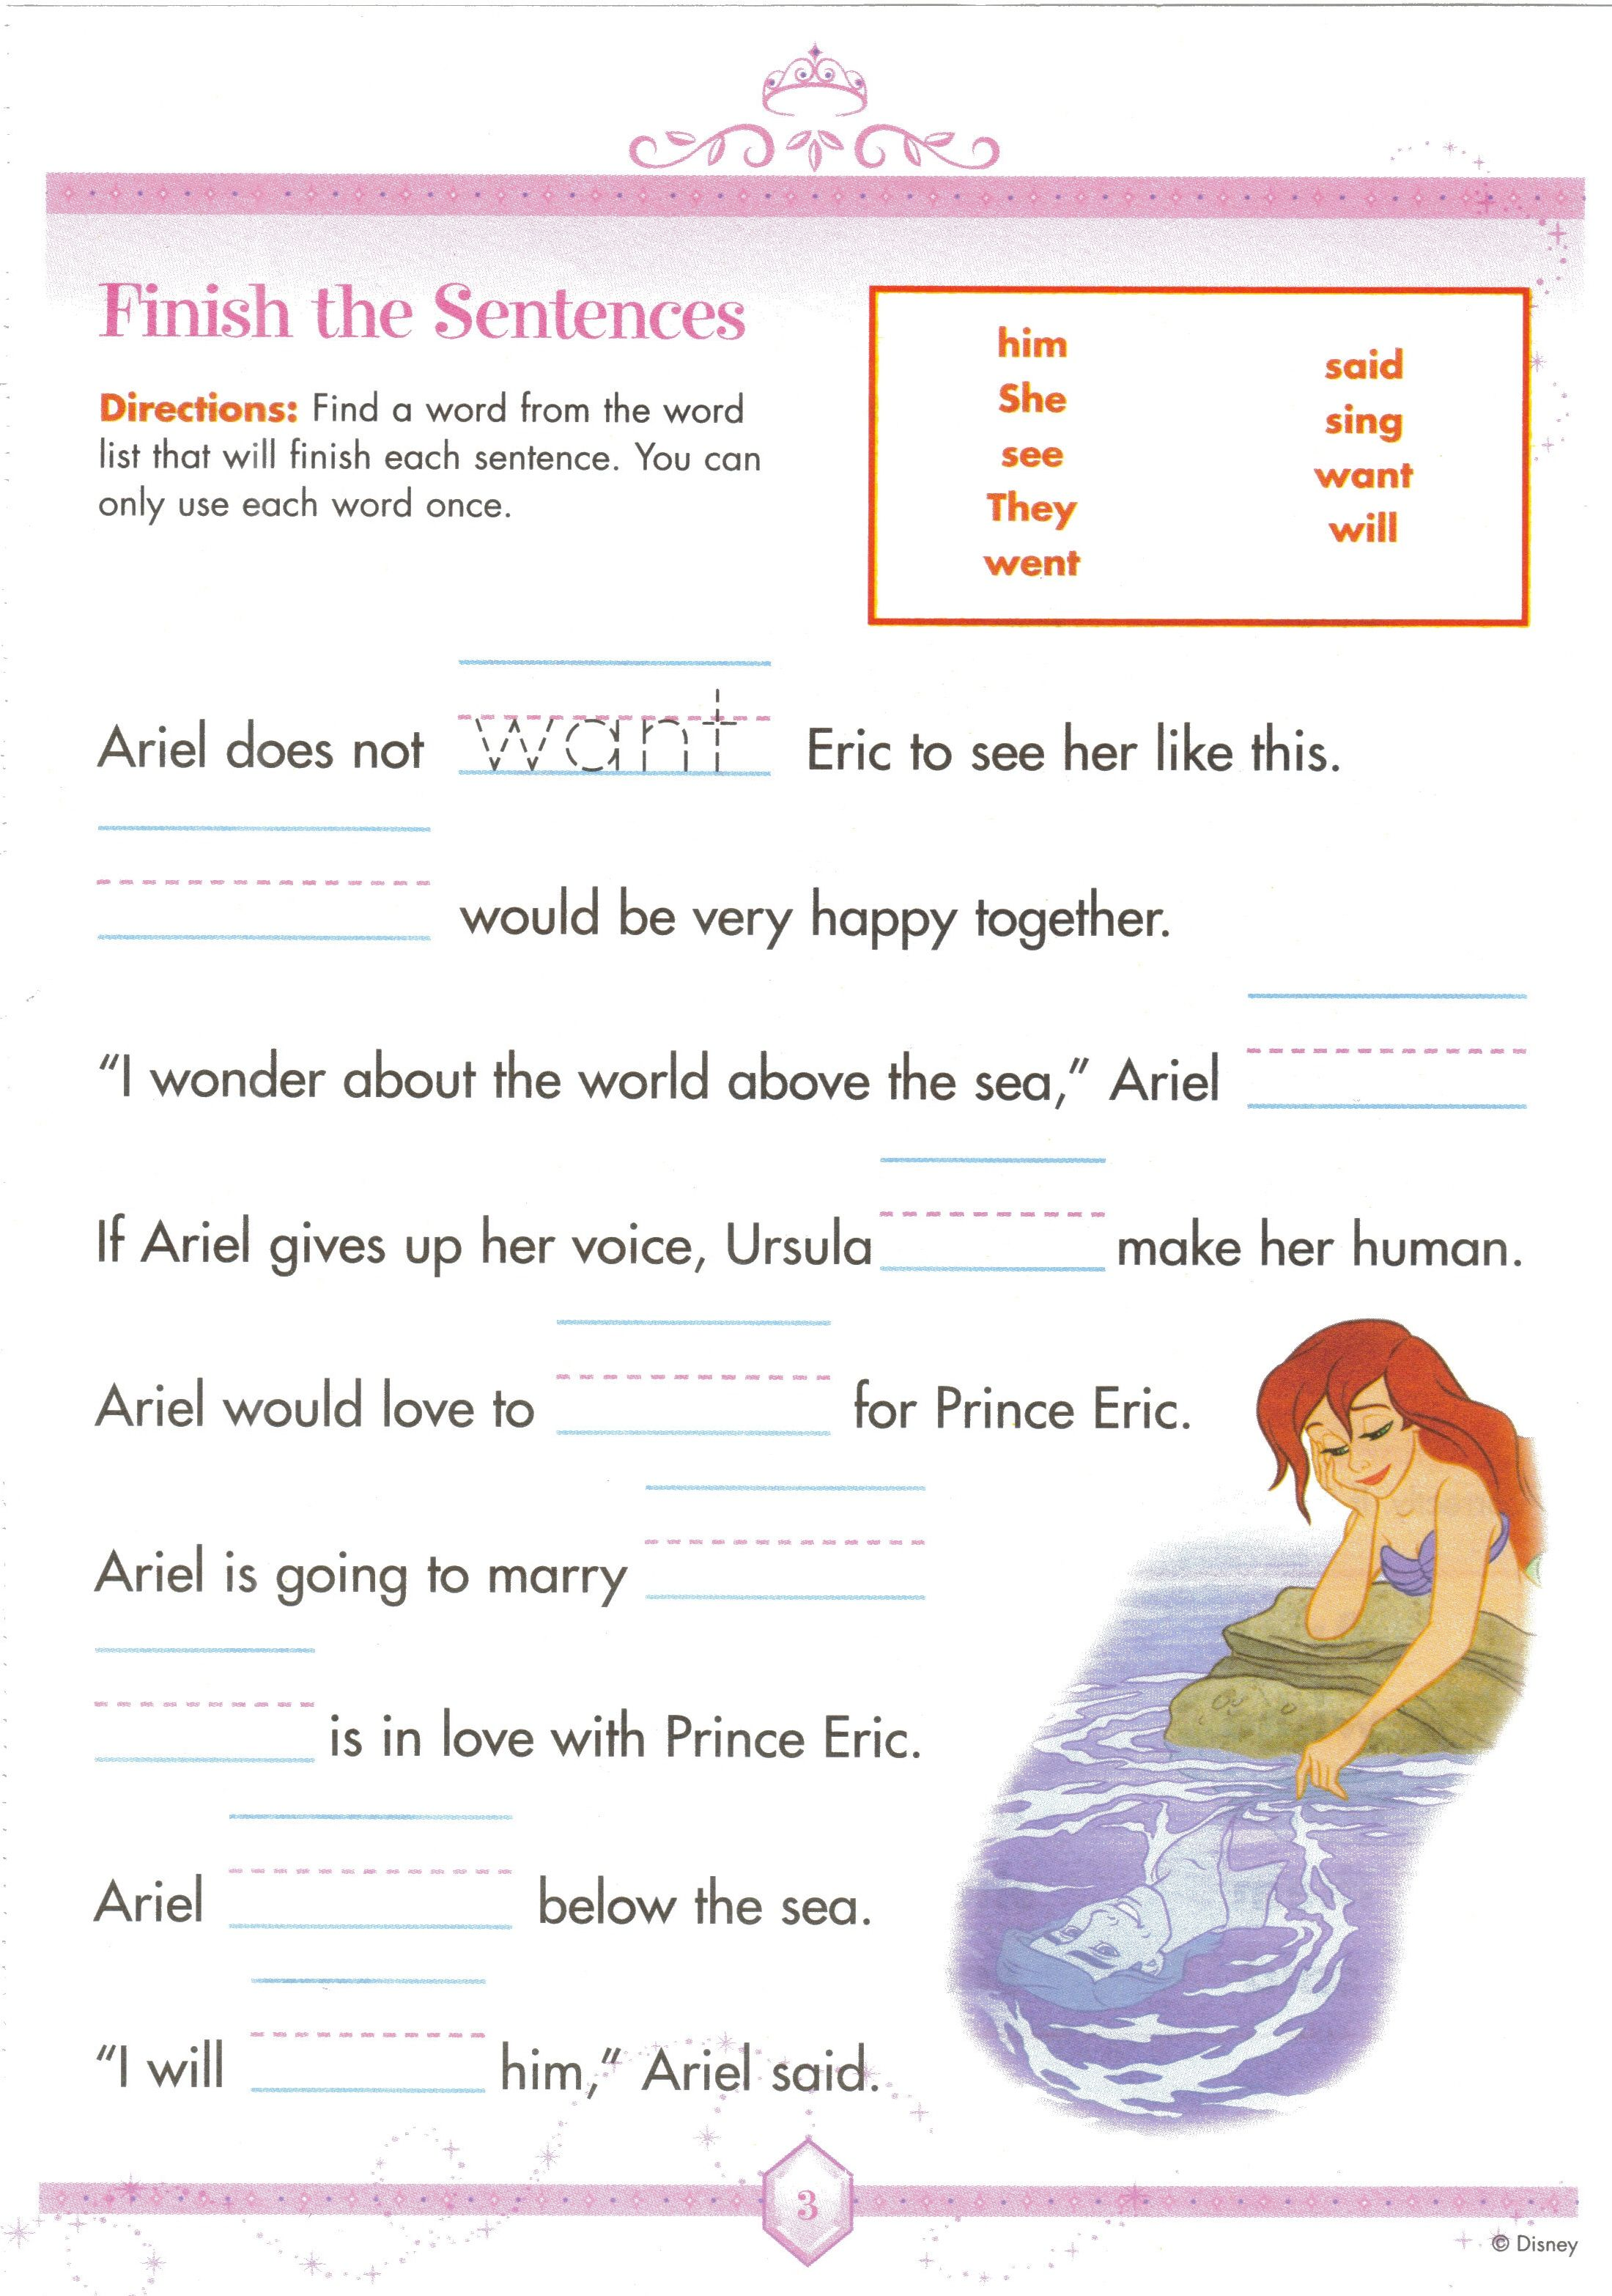 Weirdmailus  Splendid  Images About Worksheets On Pinterest  Fun Facts For Kids  With Remarkable  Images About Worksheets On Pinterest  Fun Facts For Kids Earth Day Worksheets And Jungles With Comely Year  Division Worksheets Also Th Grade Preposition Worksheets In Addition Full Stops Worksheet And Making Change Worksheets Rd Grade As Well As Hcf Lcm Worksheet Additionally Grammar Prepositions Worksheets From Pinterestcom With Weirdmailus  Remarkable  Images About Worksheets On Pinterest  Fun Facts For Kids  With Comely  Images About Worksheets On Pinterest  Fun Facts For Kids Earth Day Worksheets And Jungles And Splendid Year  Division Worksheets Also Th Grade Preposition Worksheets In Addition Full Stops Worksheet From Pinterestcom